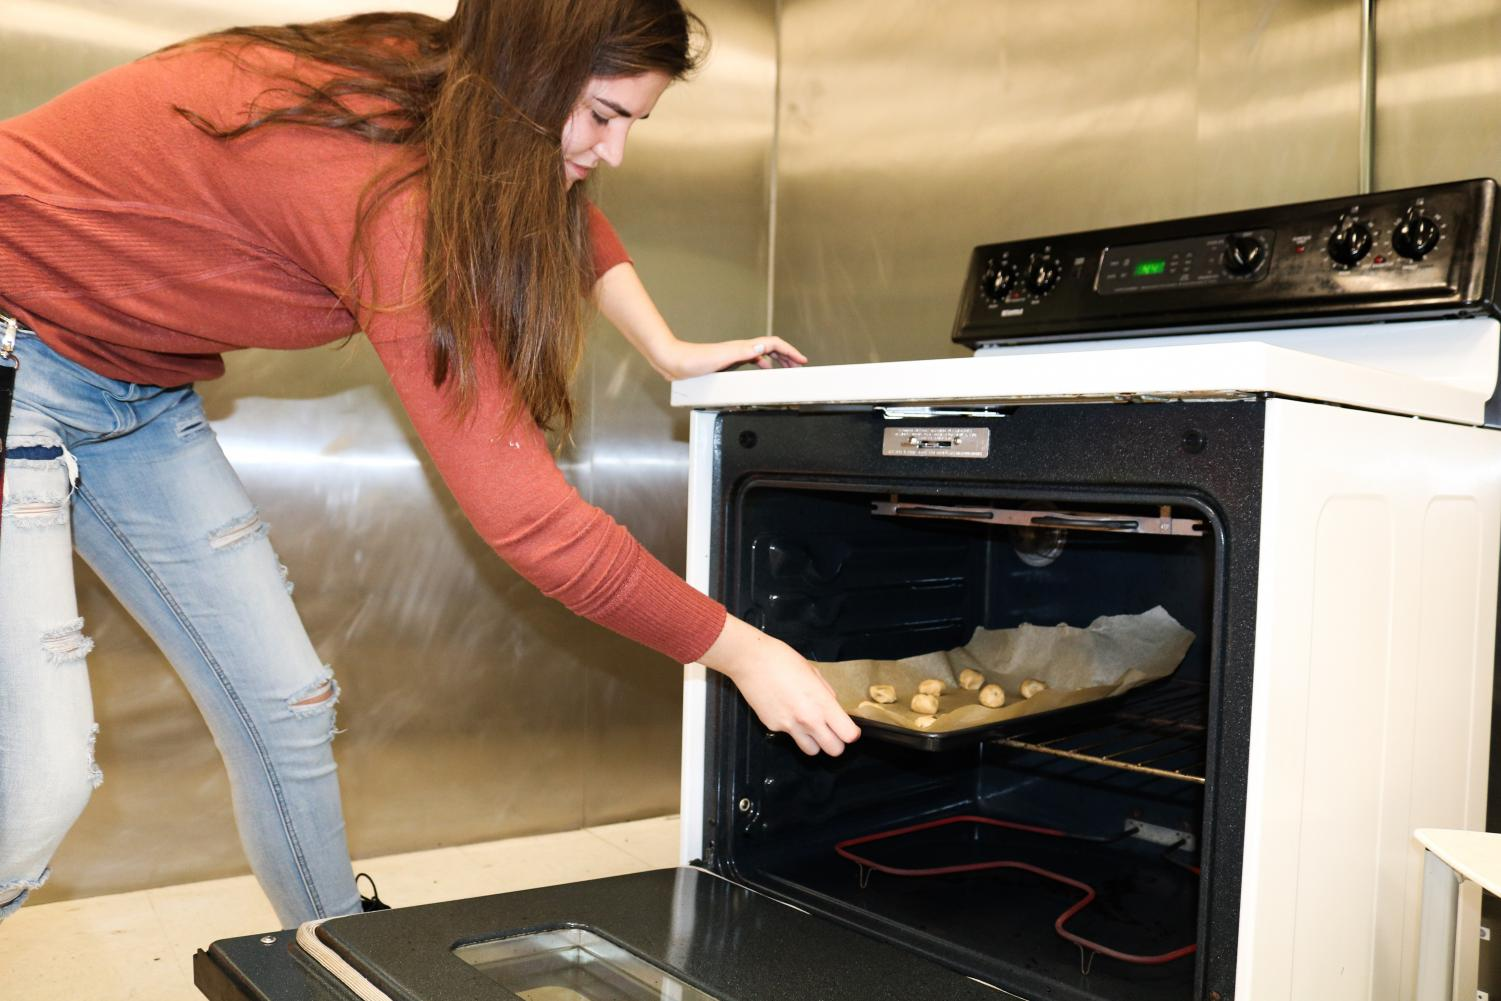 Psychology sophomore Kylie Evans puts food in the oven in the Carrollton Lounge & Kitchen. The newly reopened space was converted from Deaux into a space for use by students. Photo credit: Zia Sampson